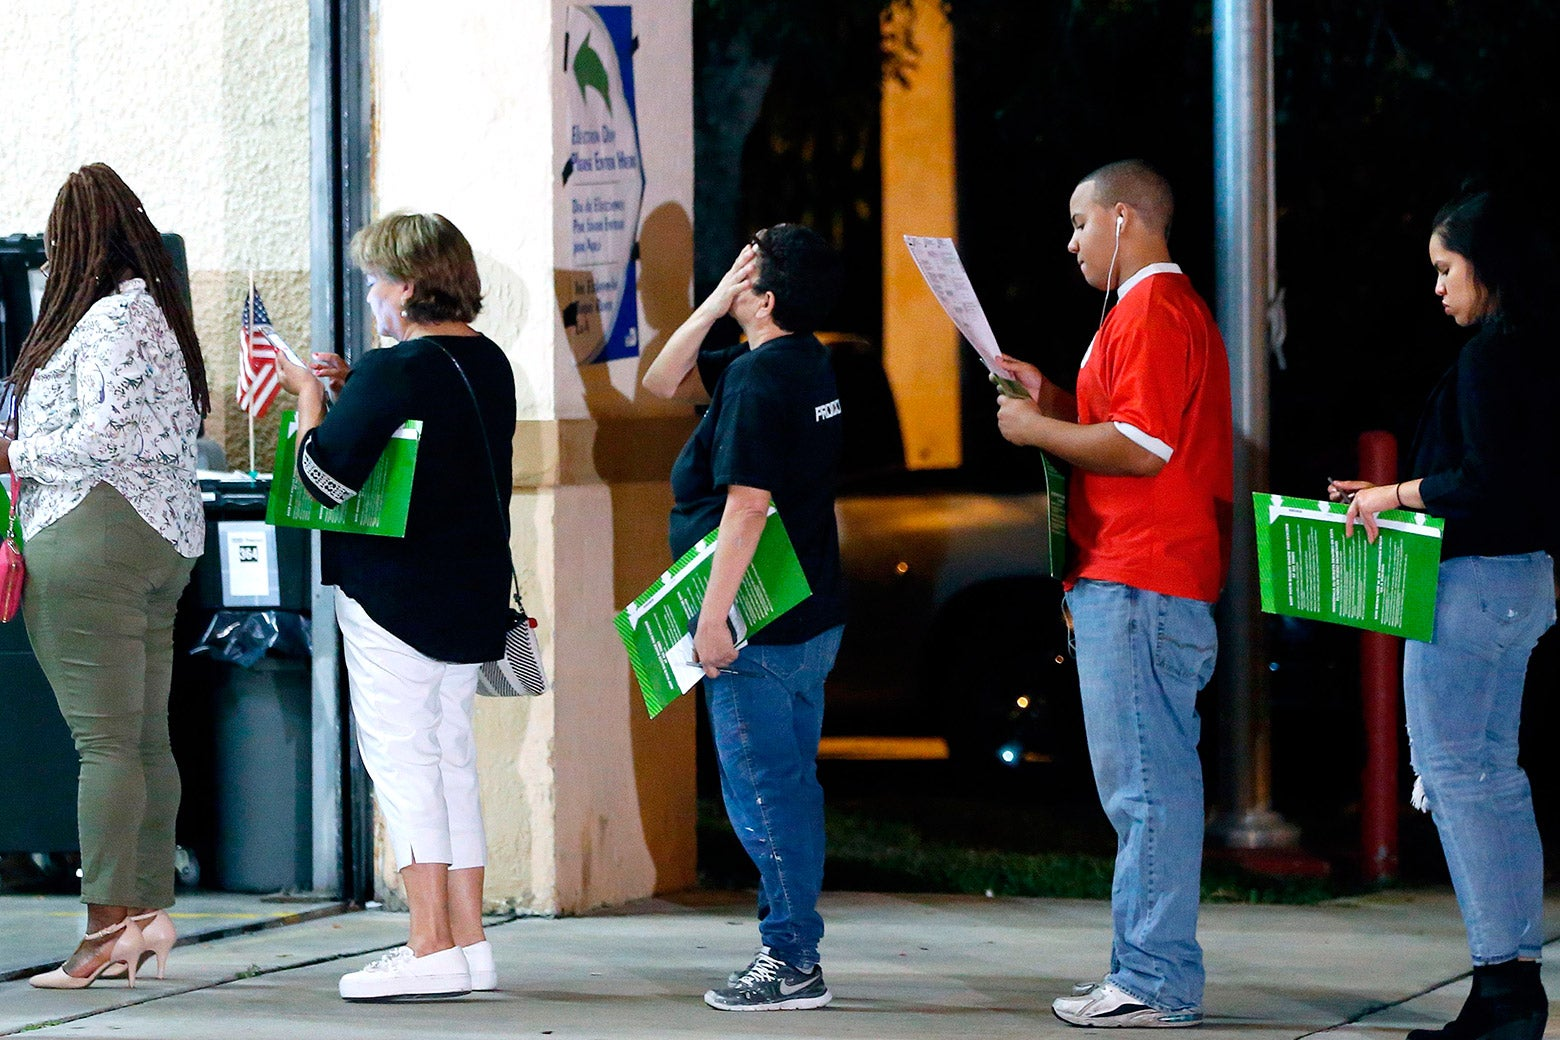 People wait in line to vote at a polling station in Miami, Florida, late on Nov. 6, 2018.